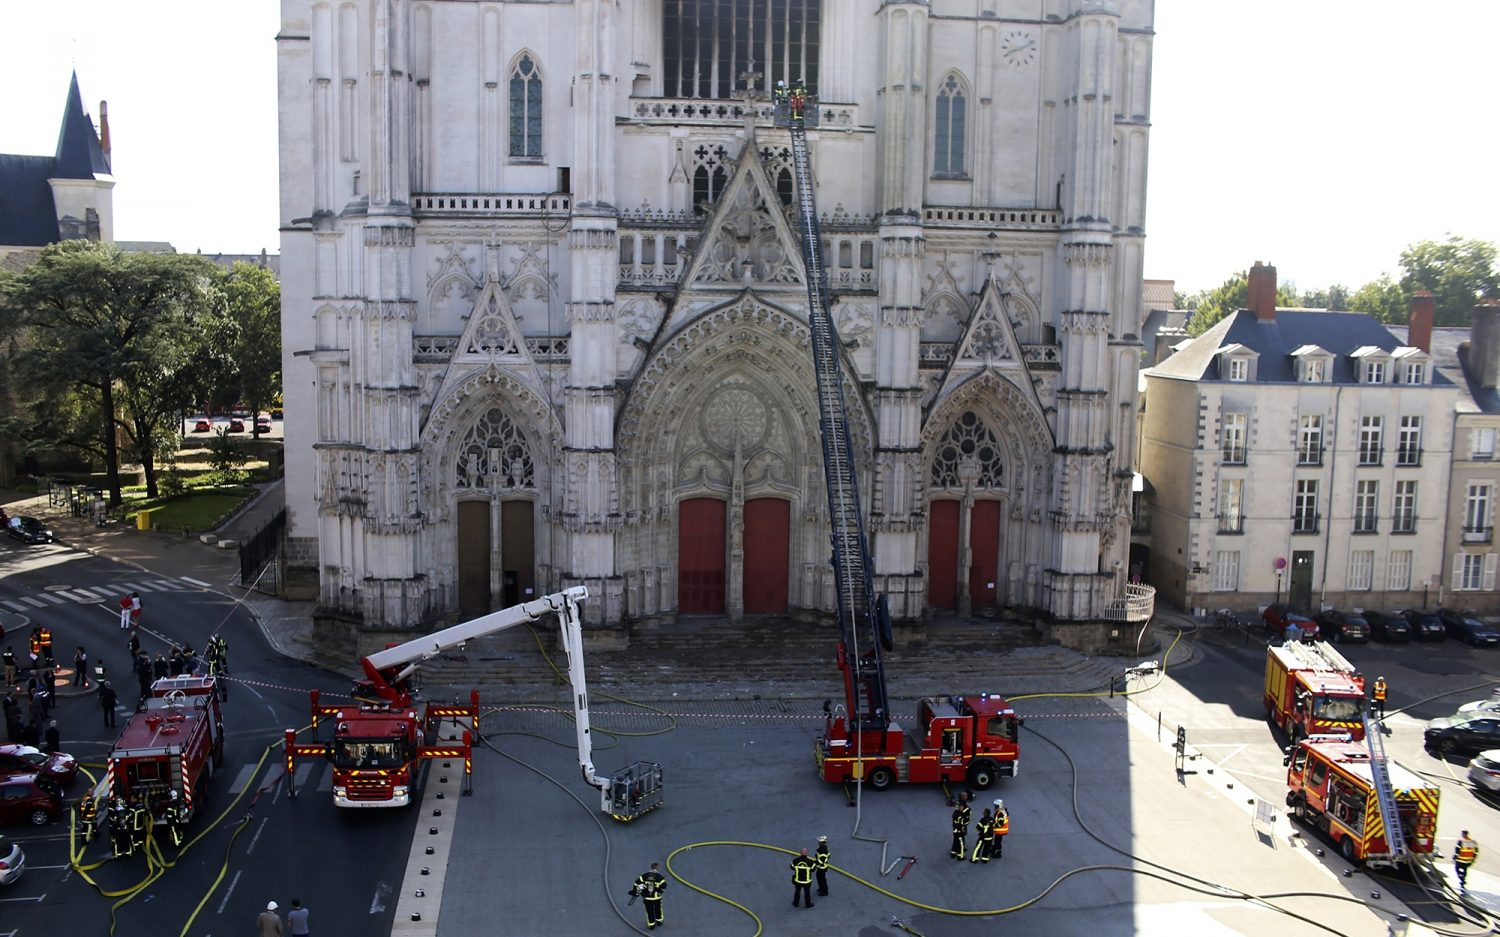 Questions loom over French cathedral fires